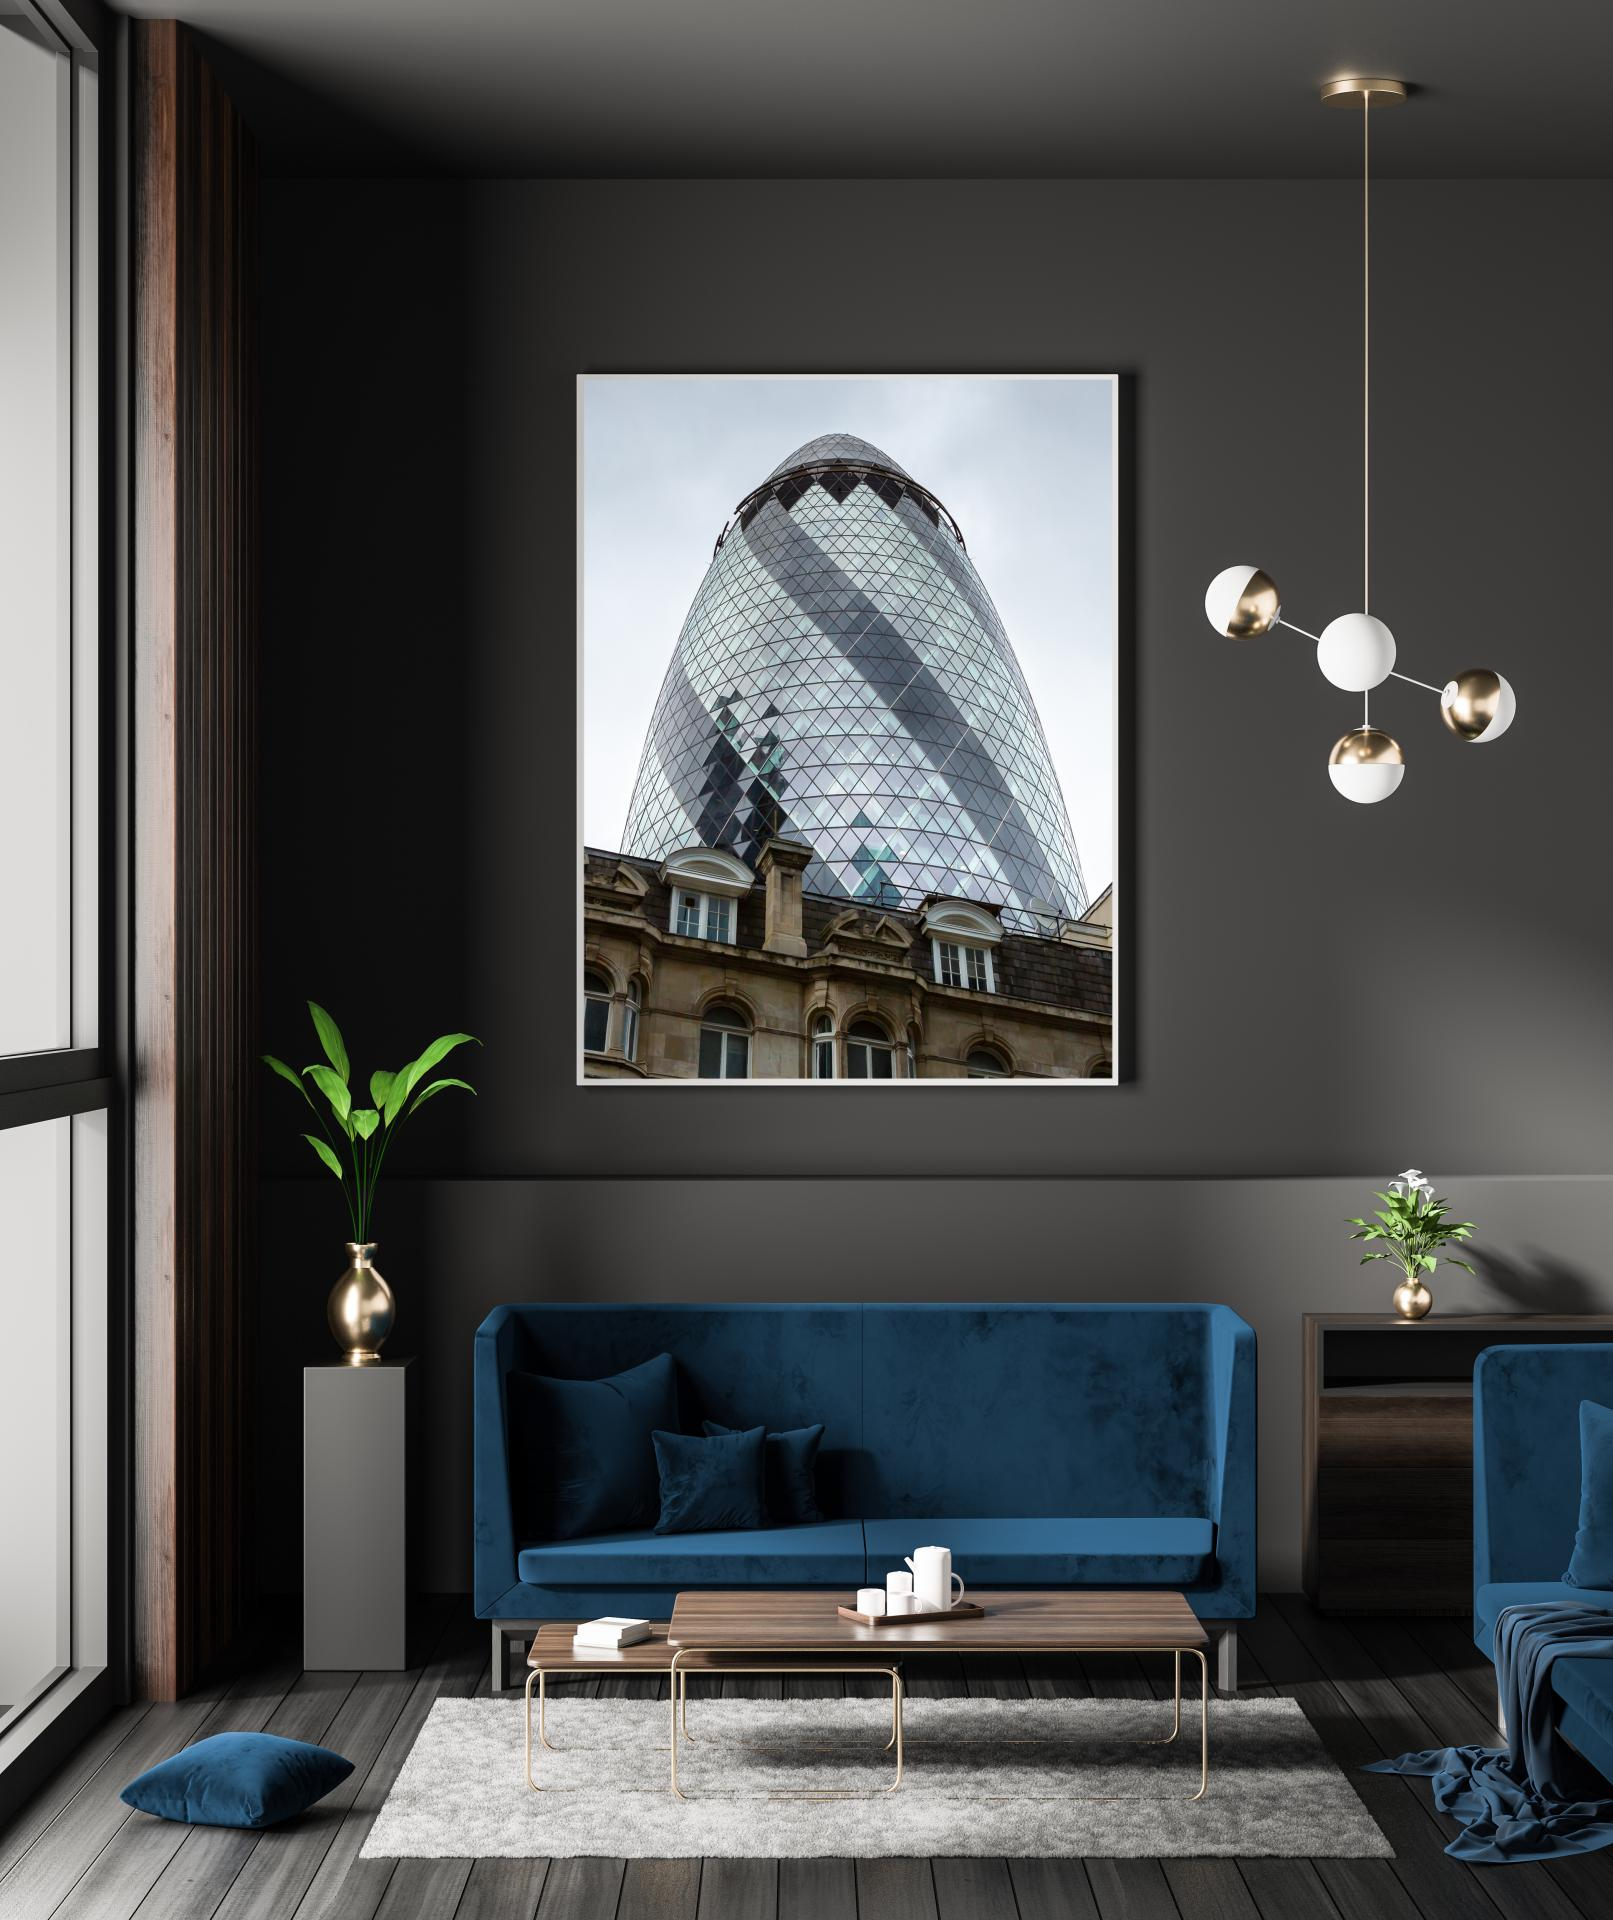 The Gerkin Building in London rising up behind traditional old building tops. London Architectural Photographer, Liane Ryan Photography